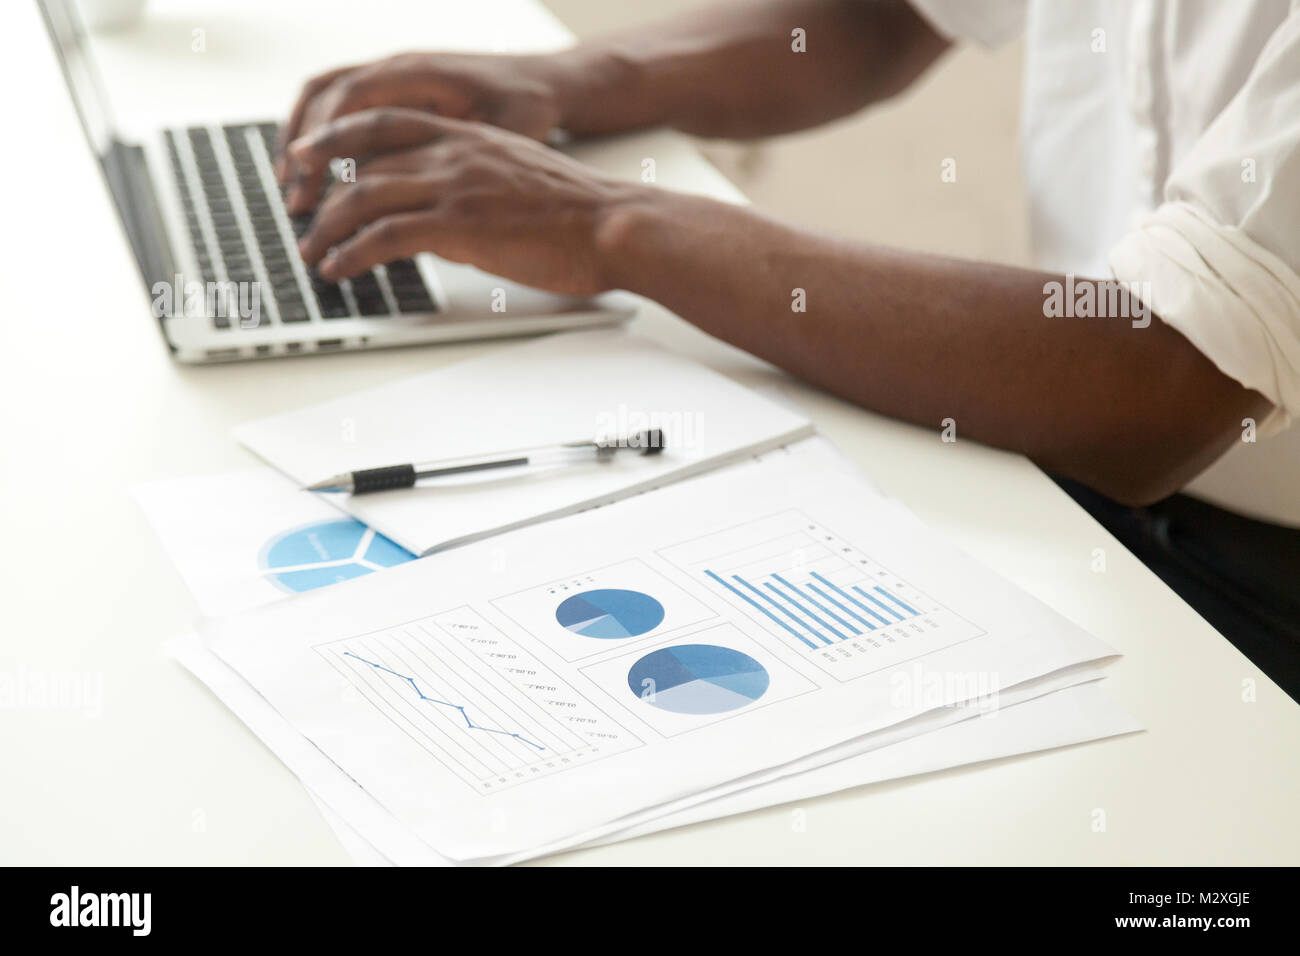 Data analysis and business statistics concept, african-american businessman using laptop analyzing work result infographic - Stock Image